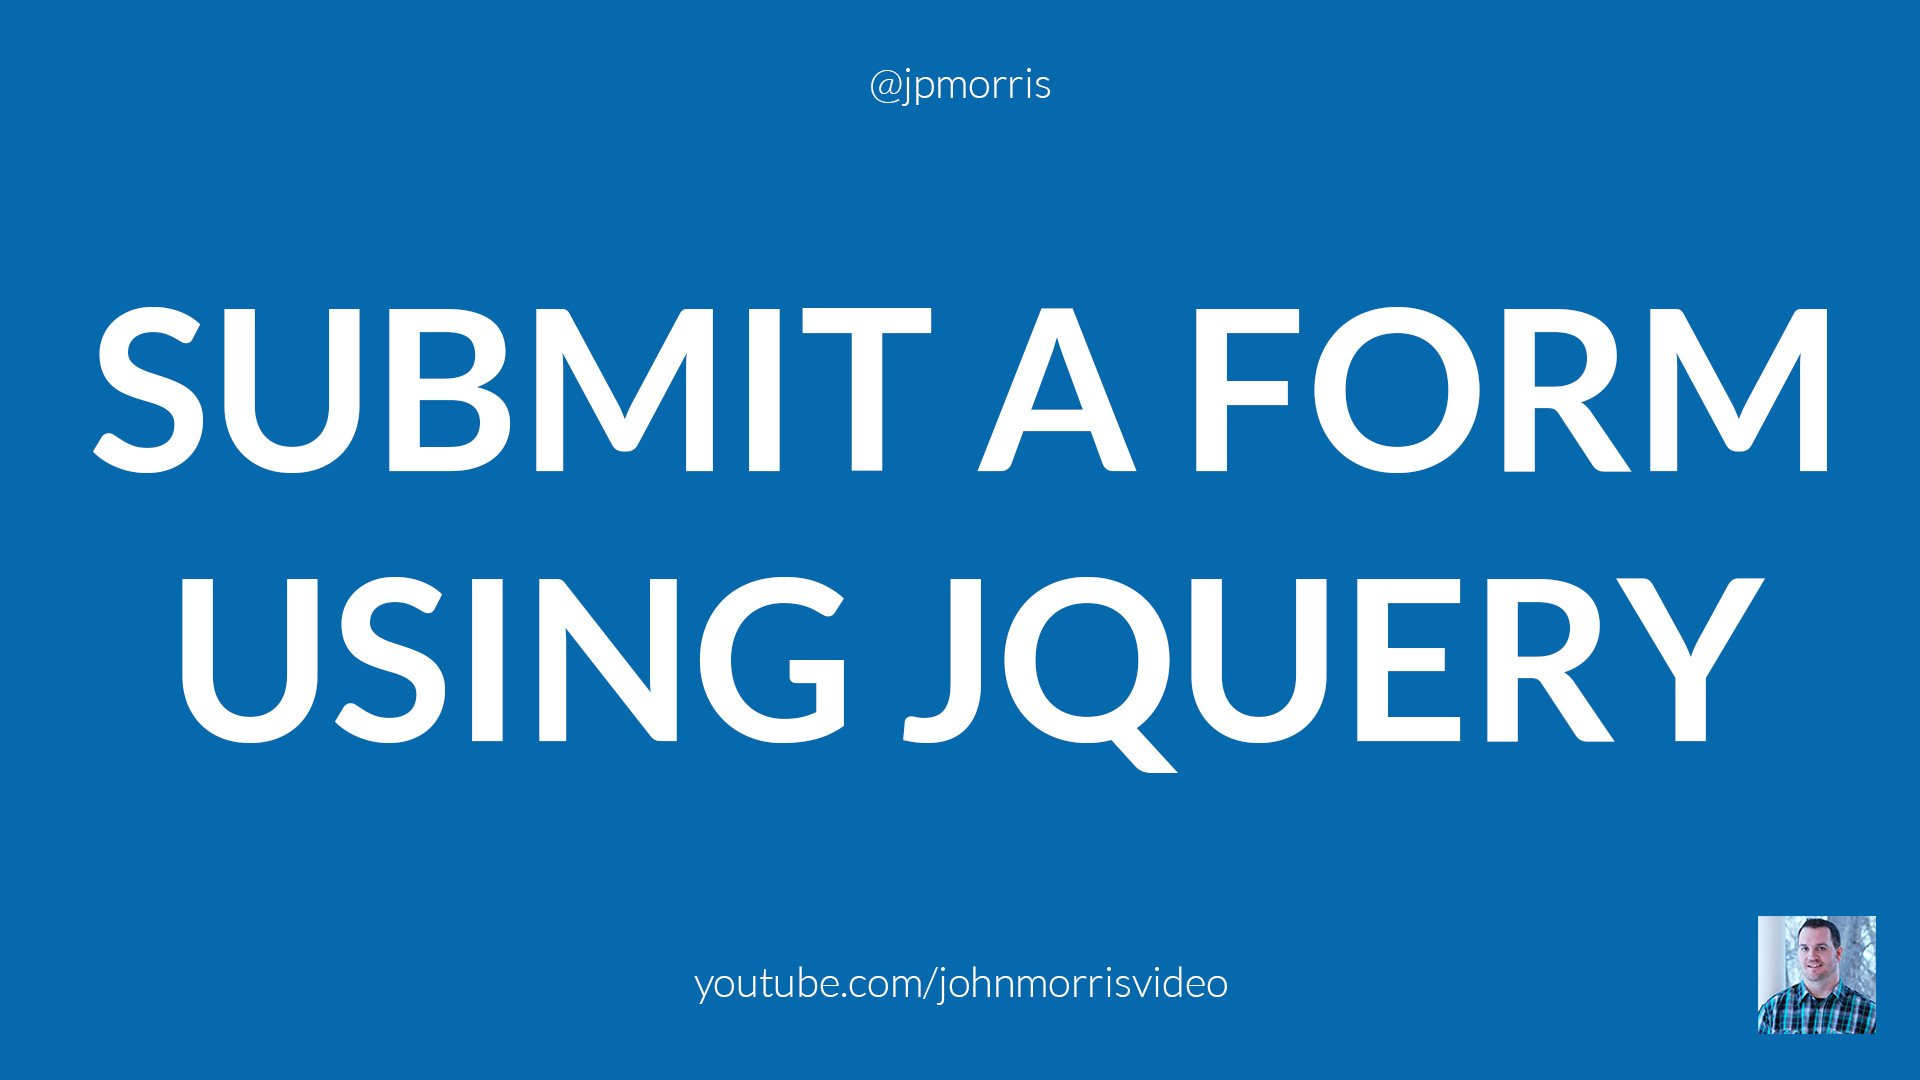 Jquery tutorial submit a form and post data using jquery and ajax baditri Choice Image